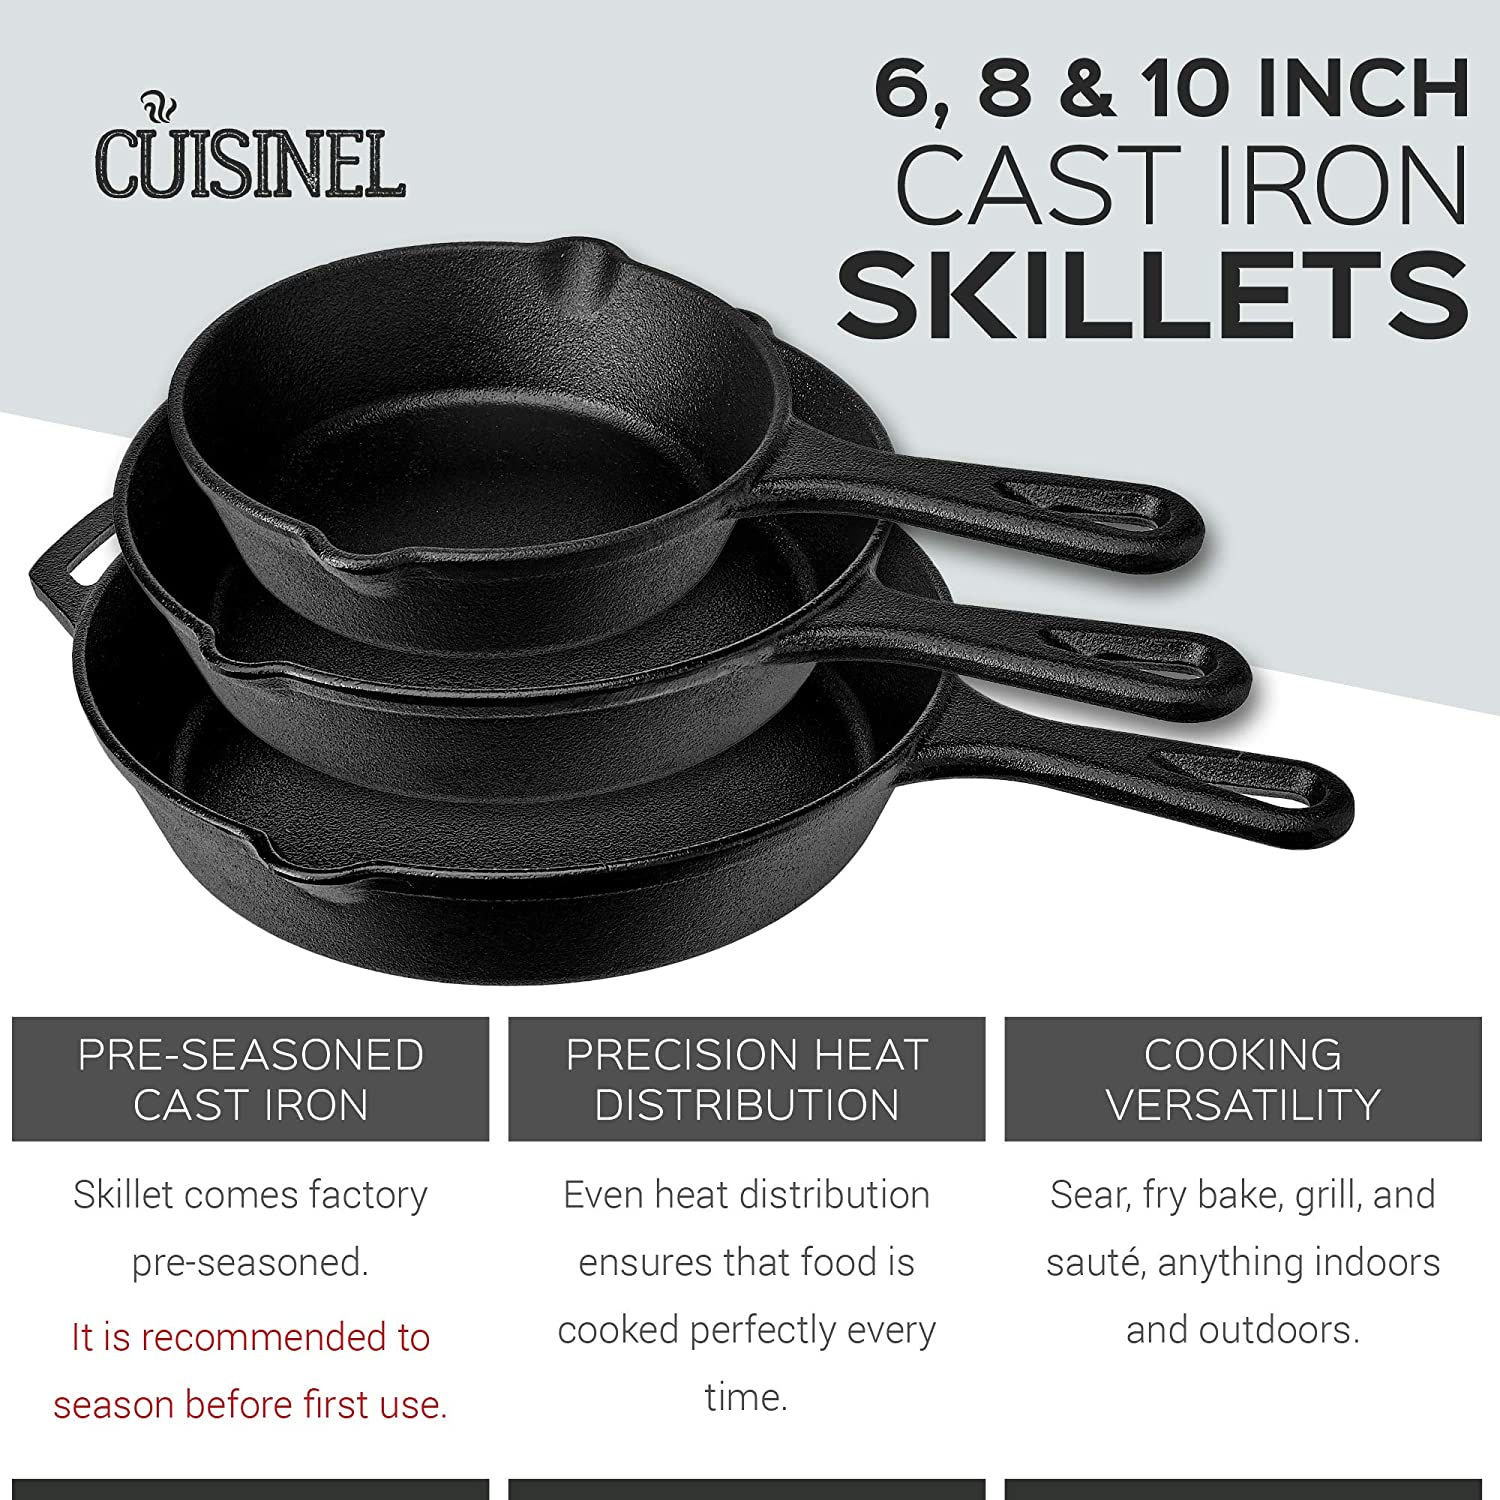 Oven Safe Cookware - 3 Heat-Resistant Holders - Indoor and Outdoor Use - Grill, Stovetop, Induction Safe